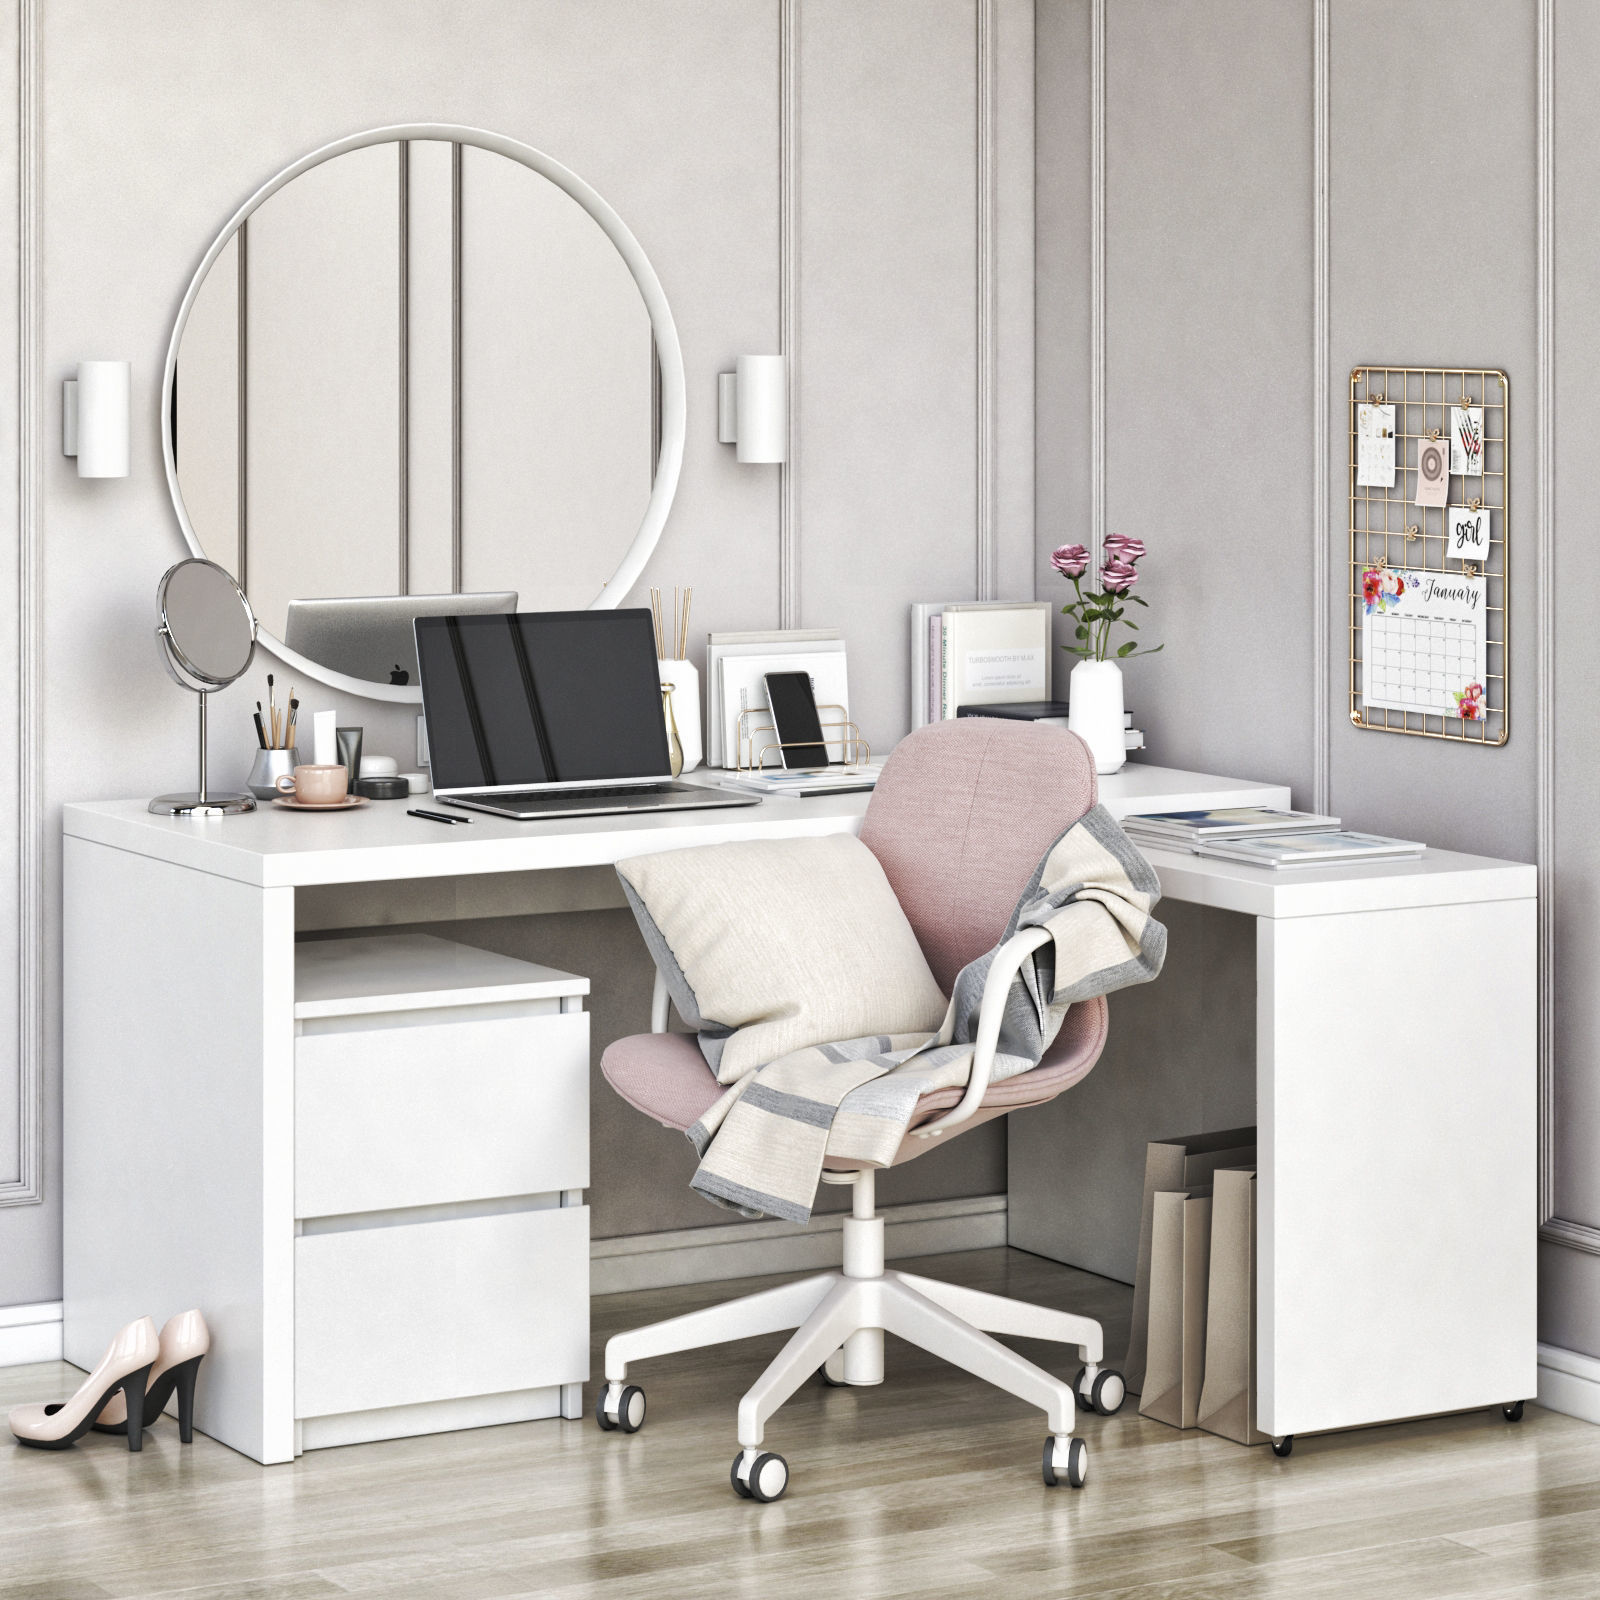 MALM corner workplace